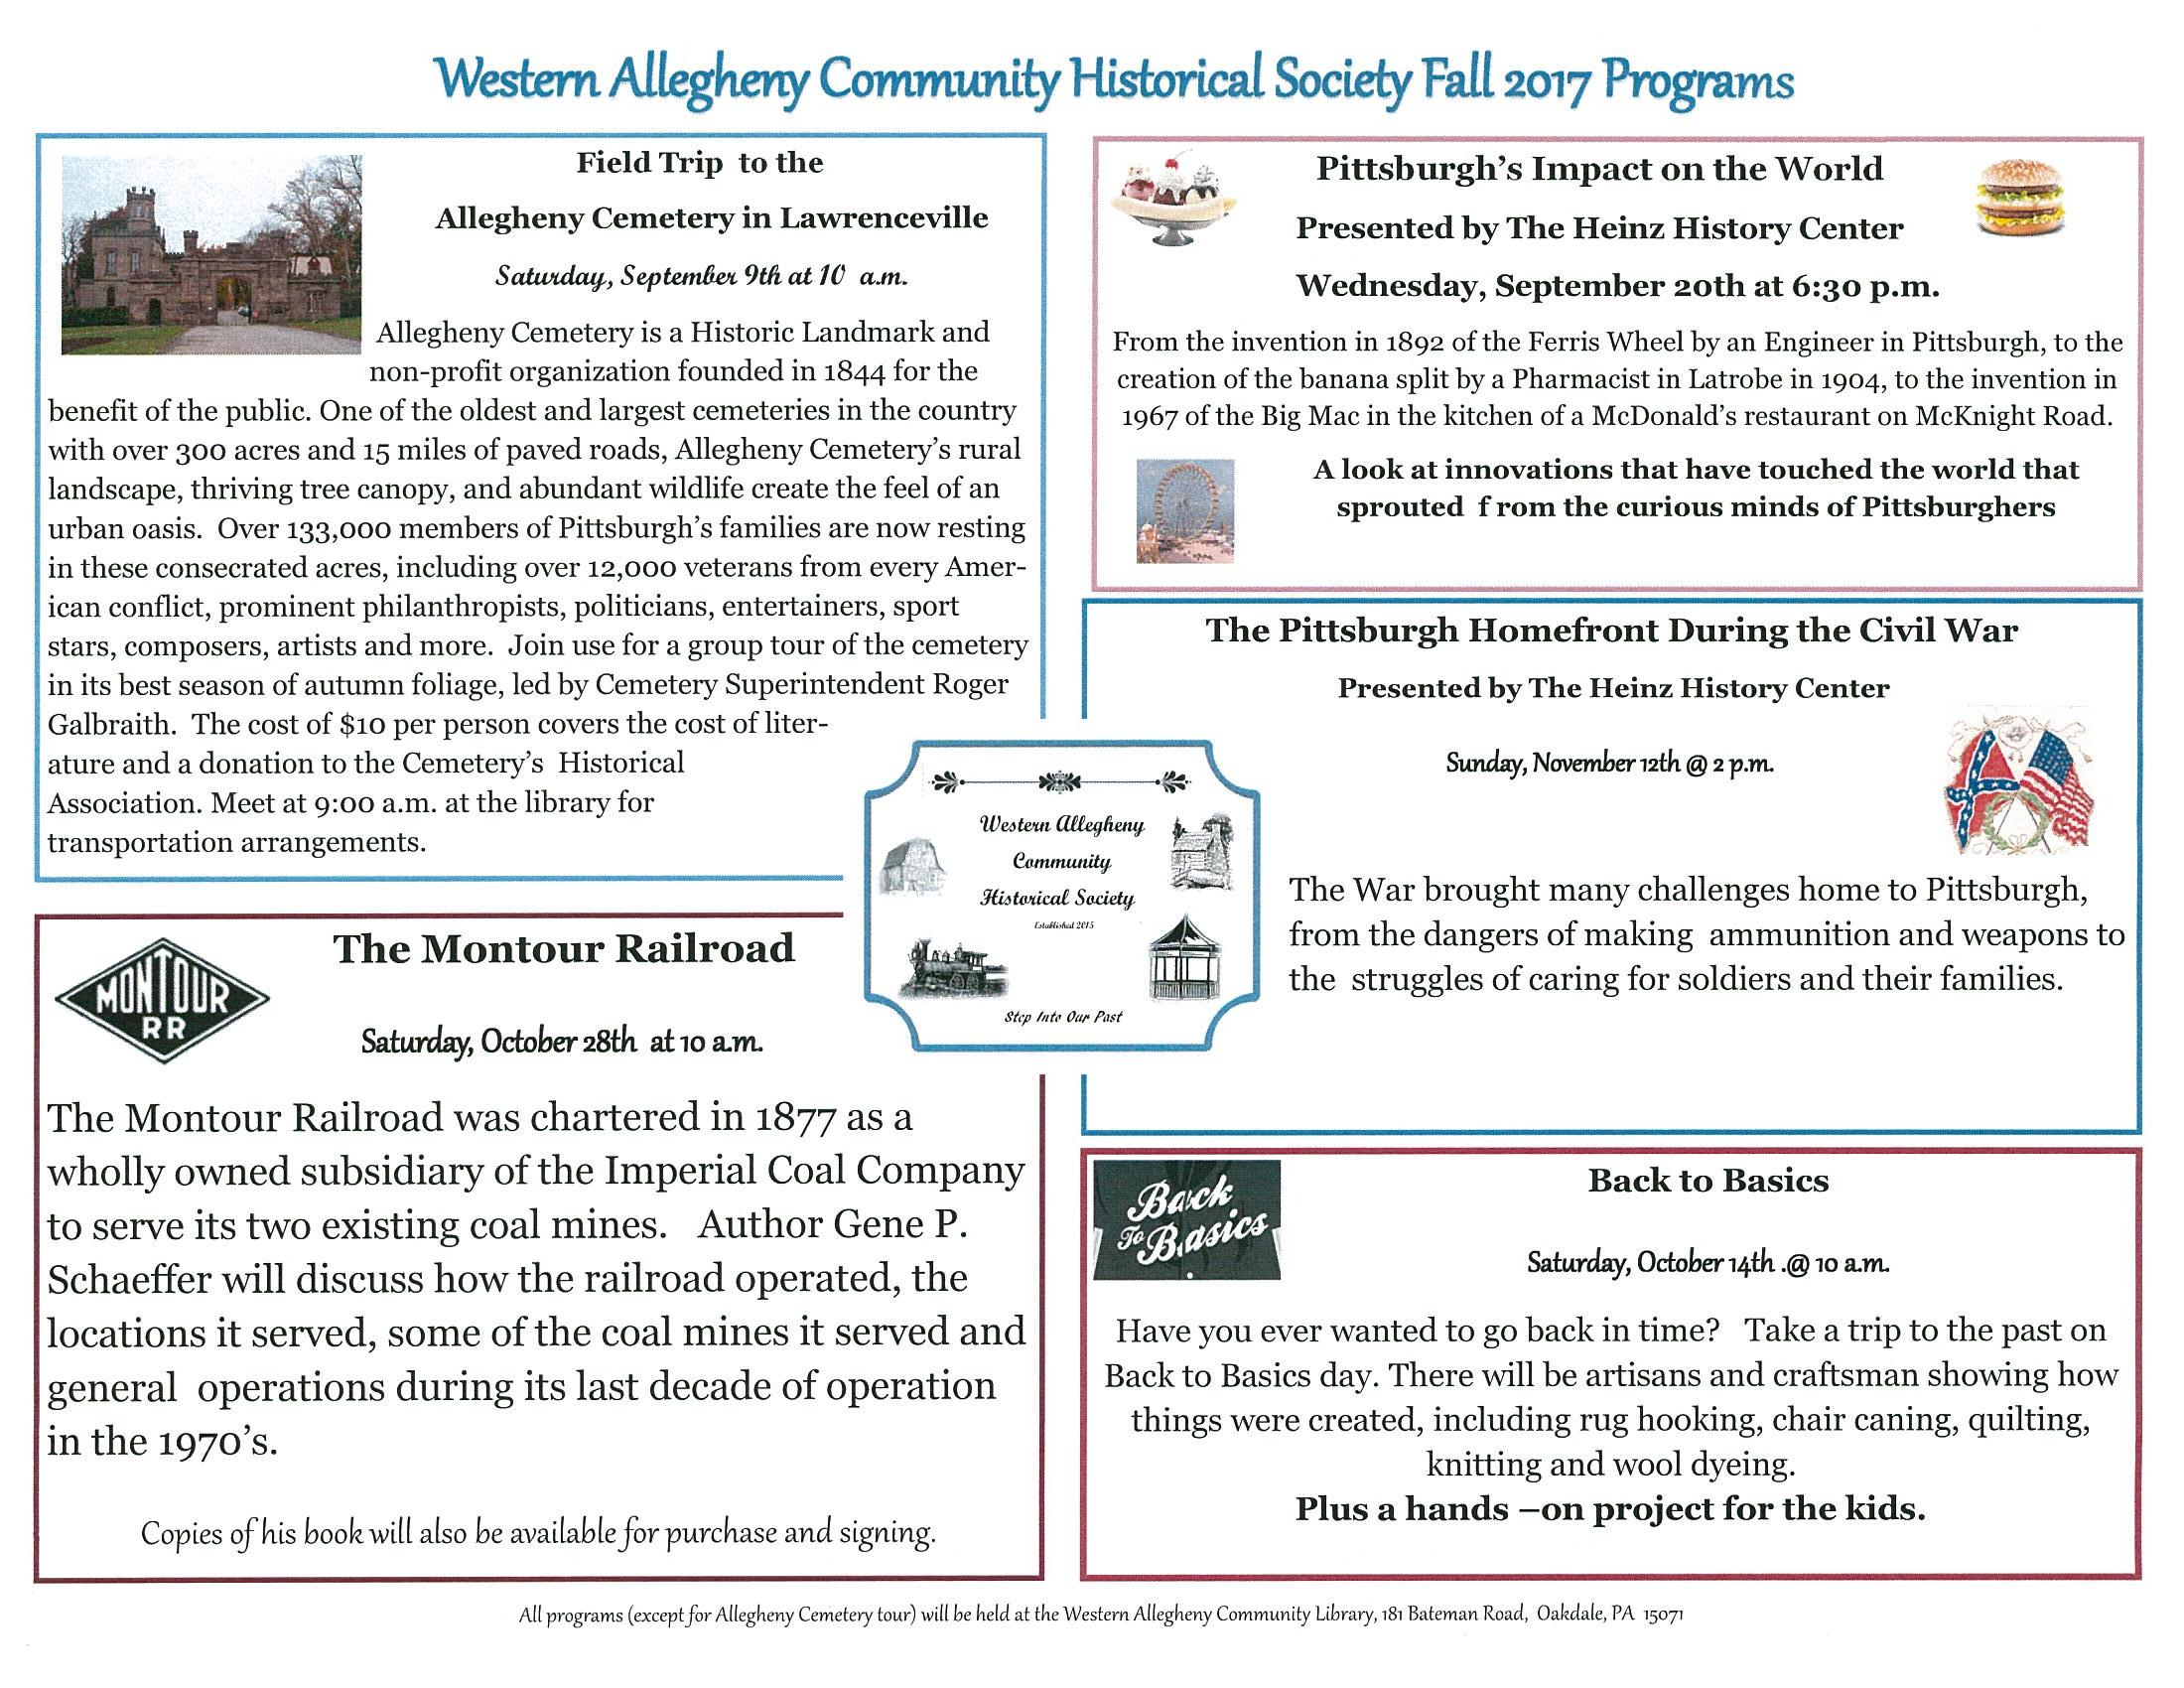 western allegheny historical society fall 2017 programs